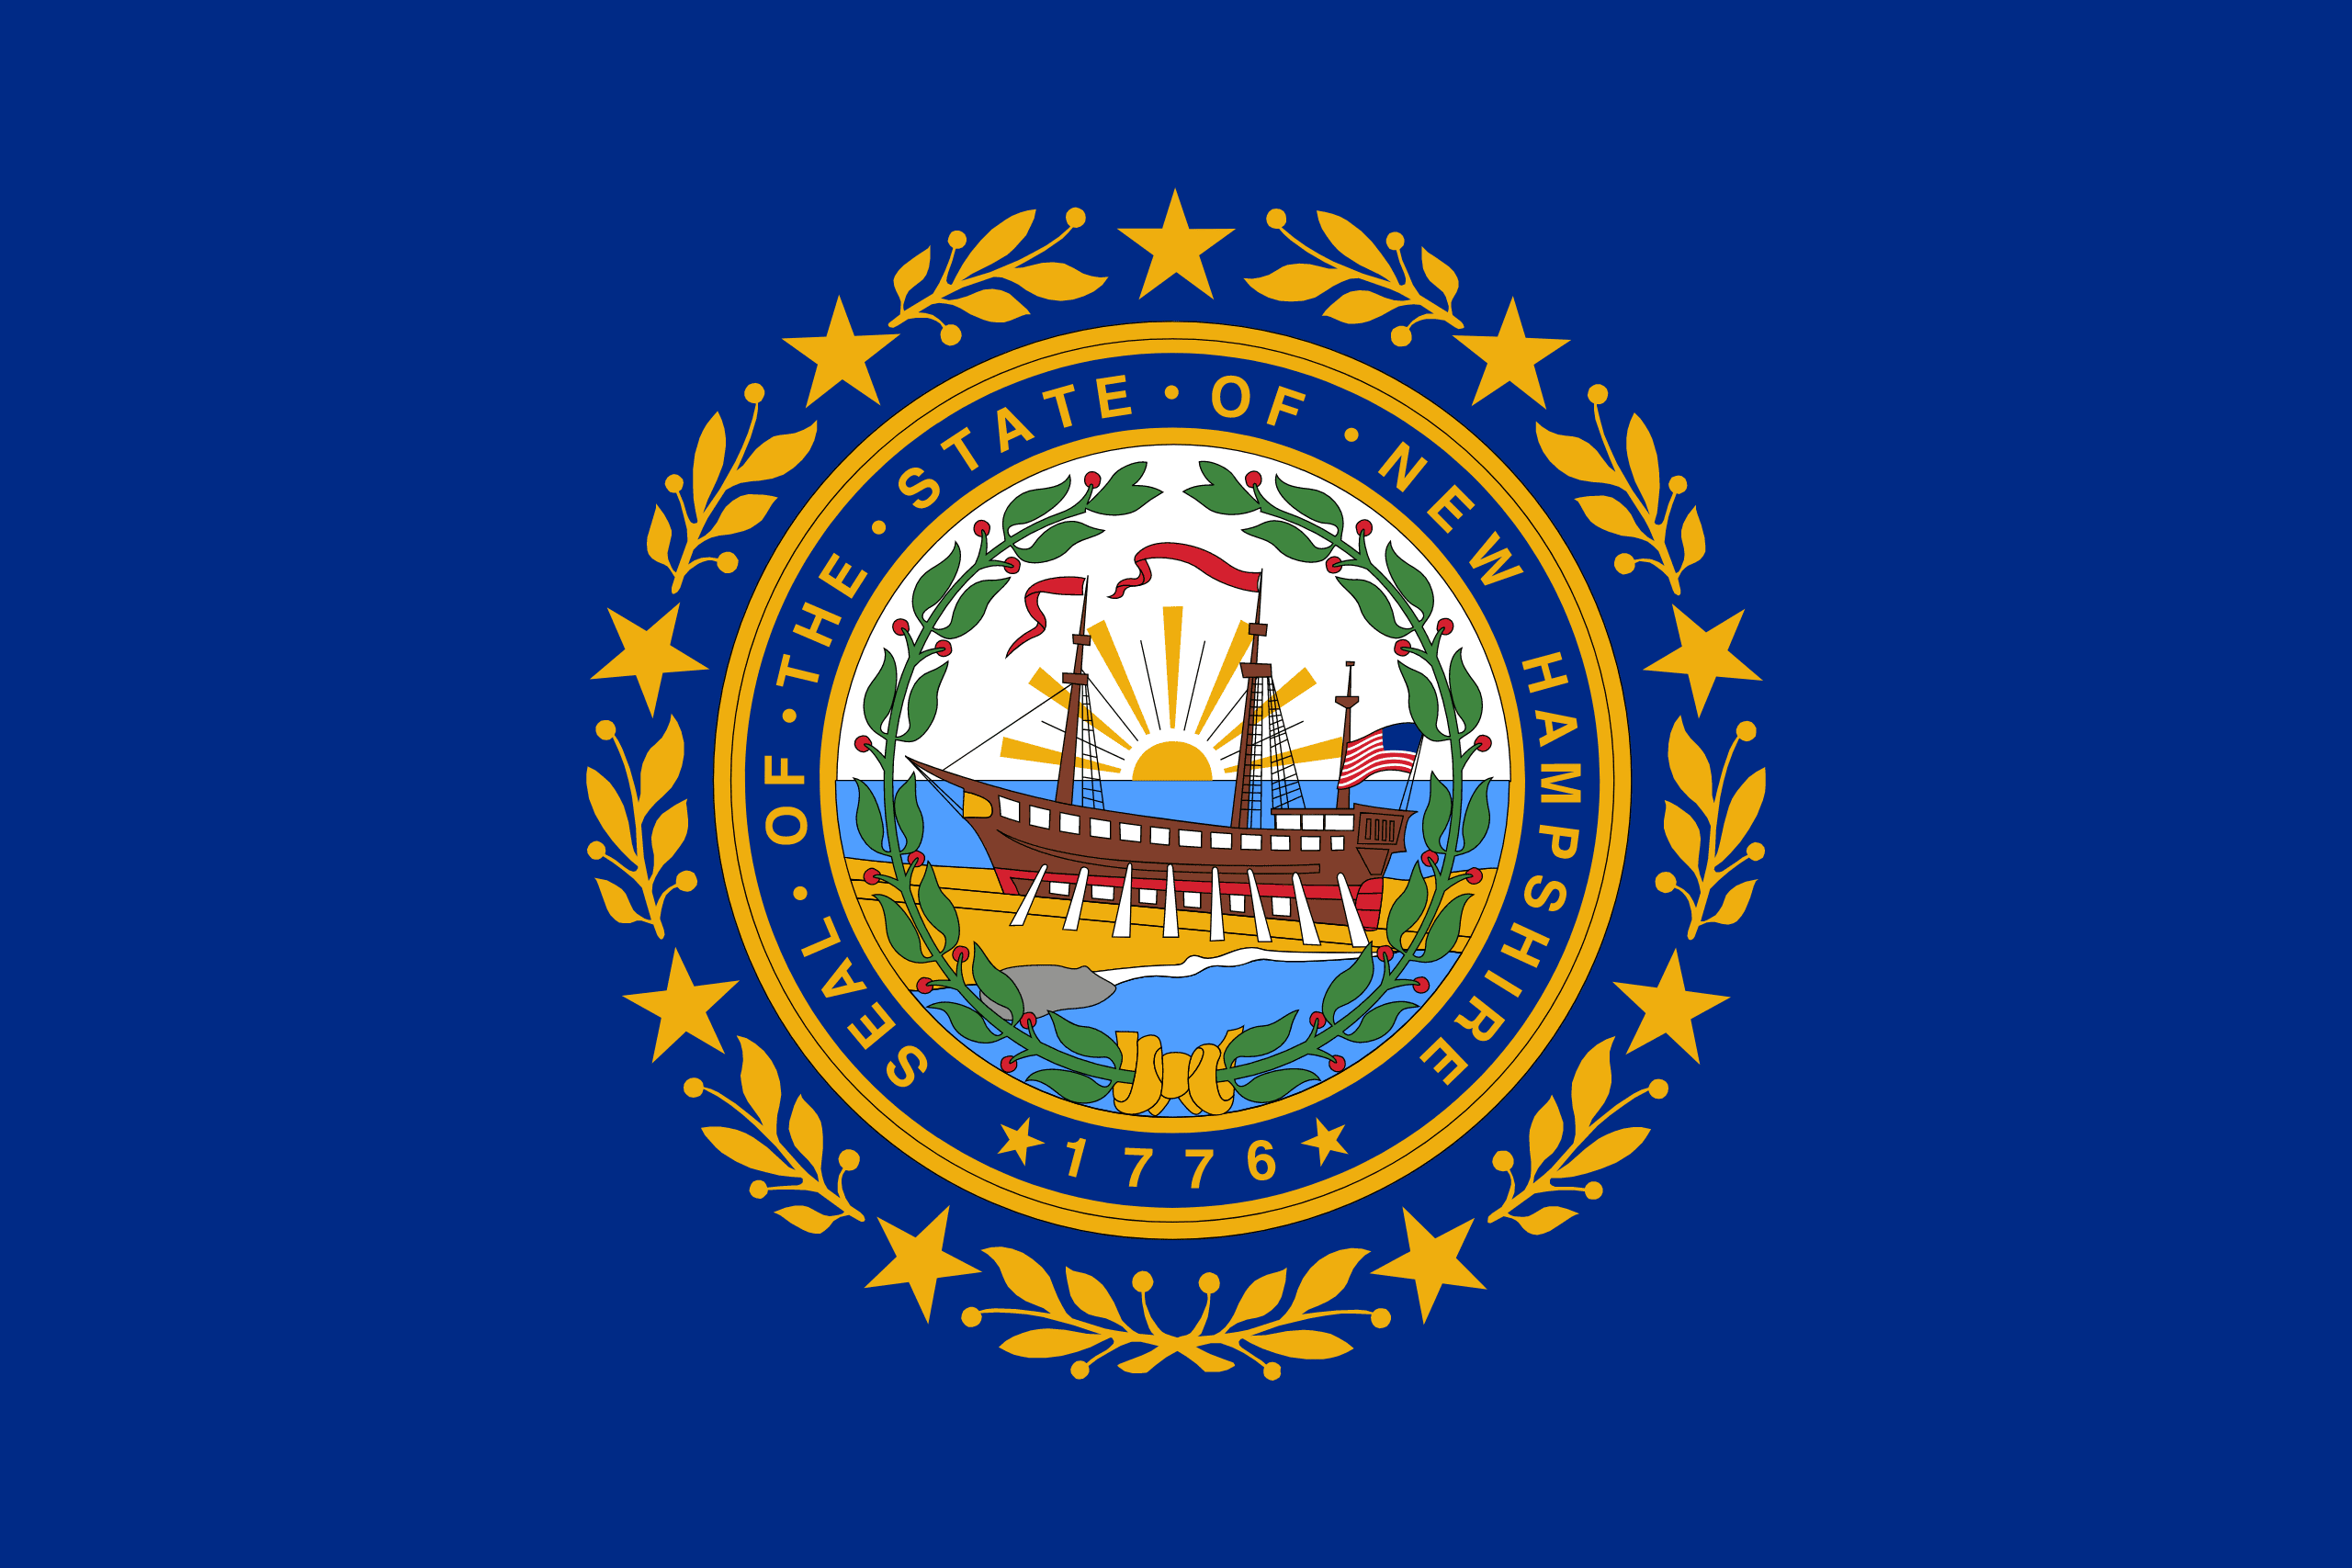 New Hampshire License Plate Lookup